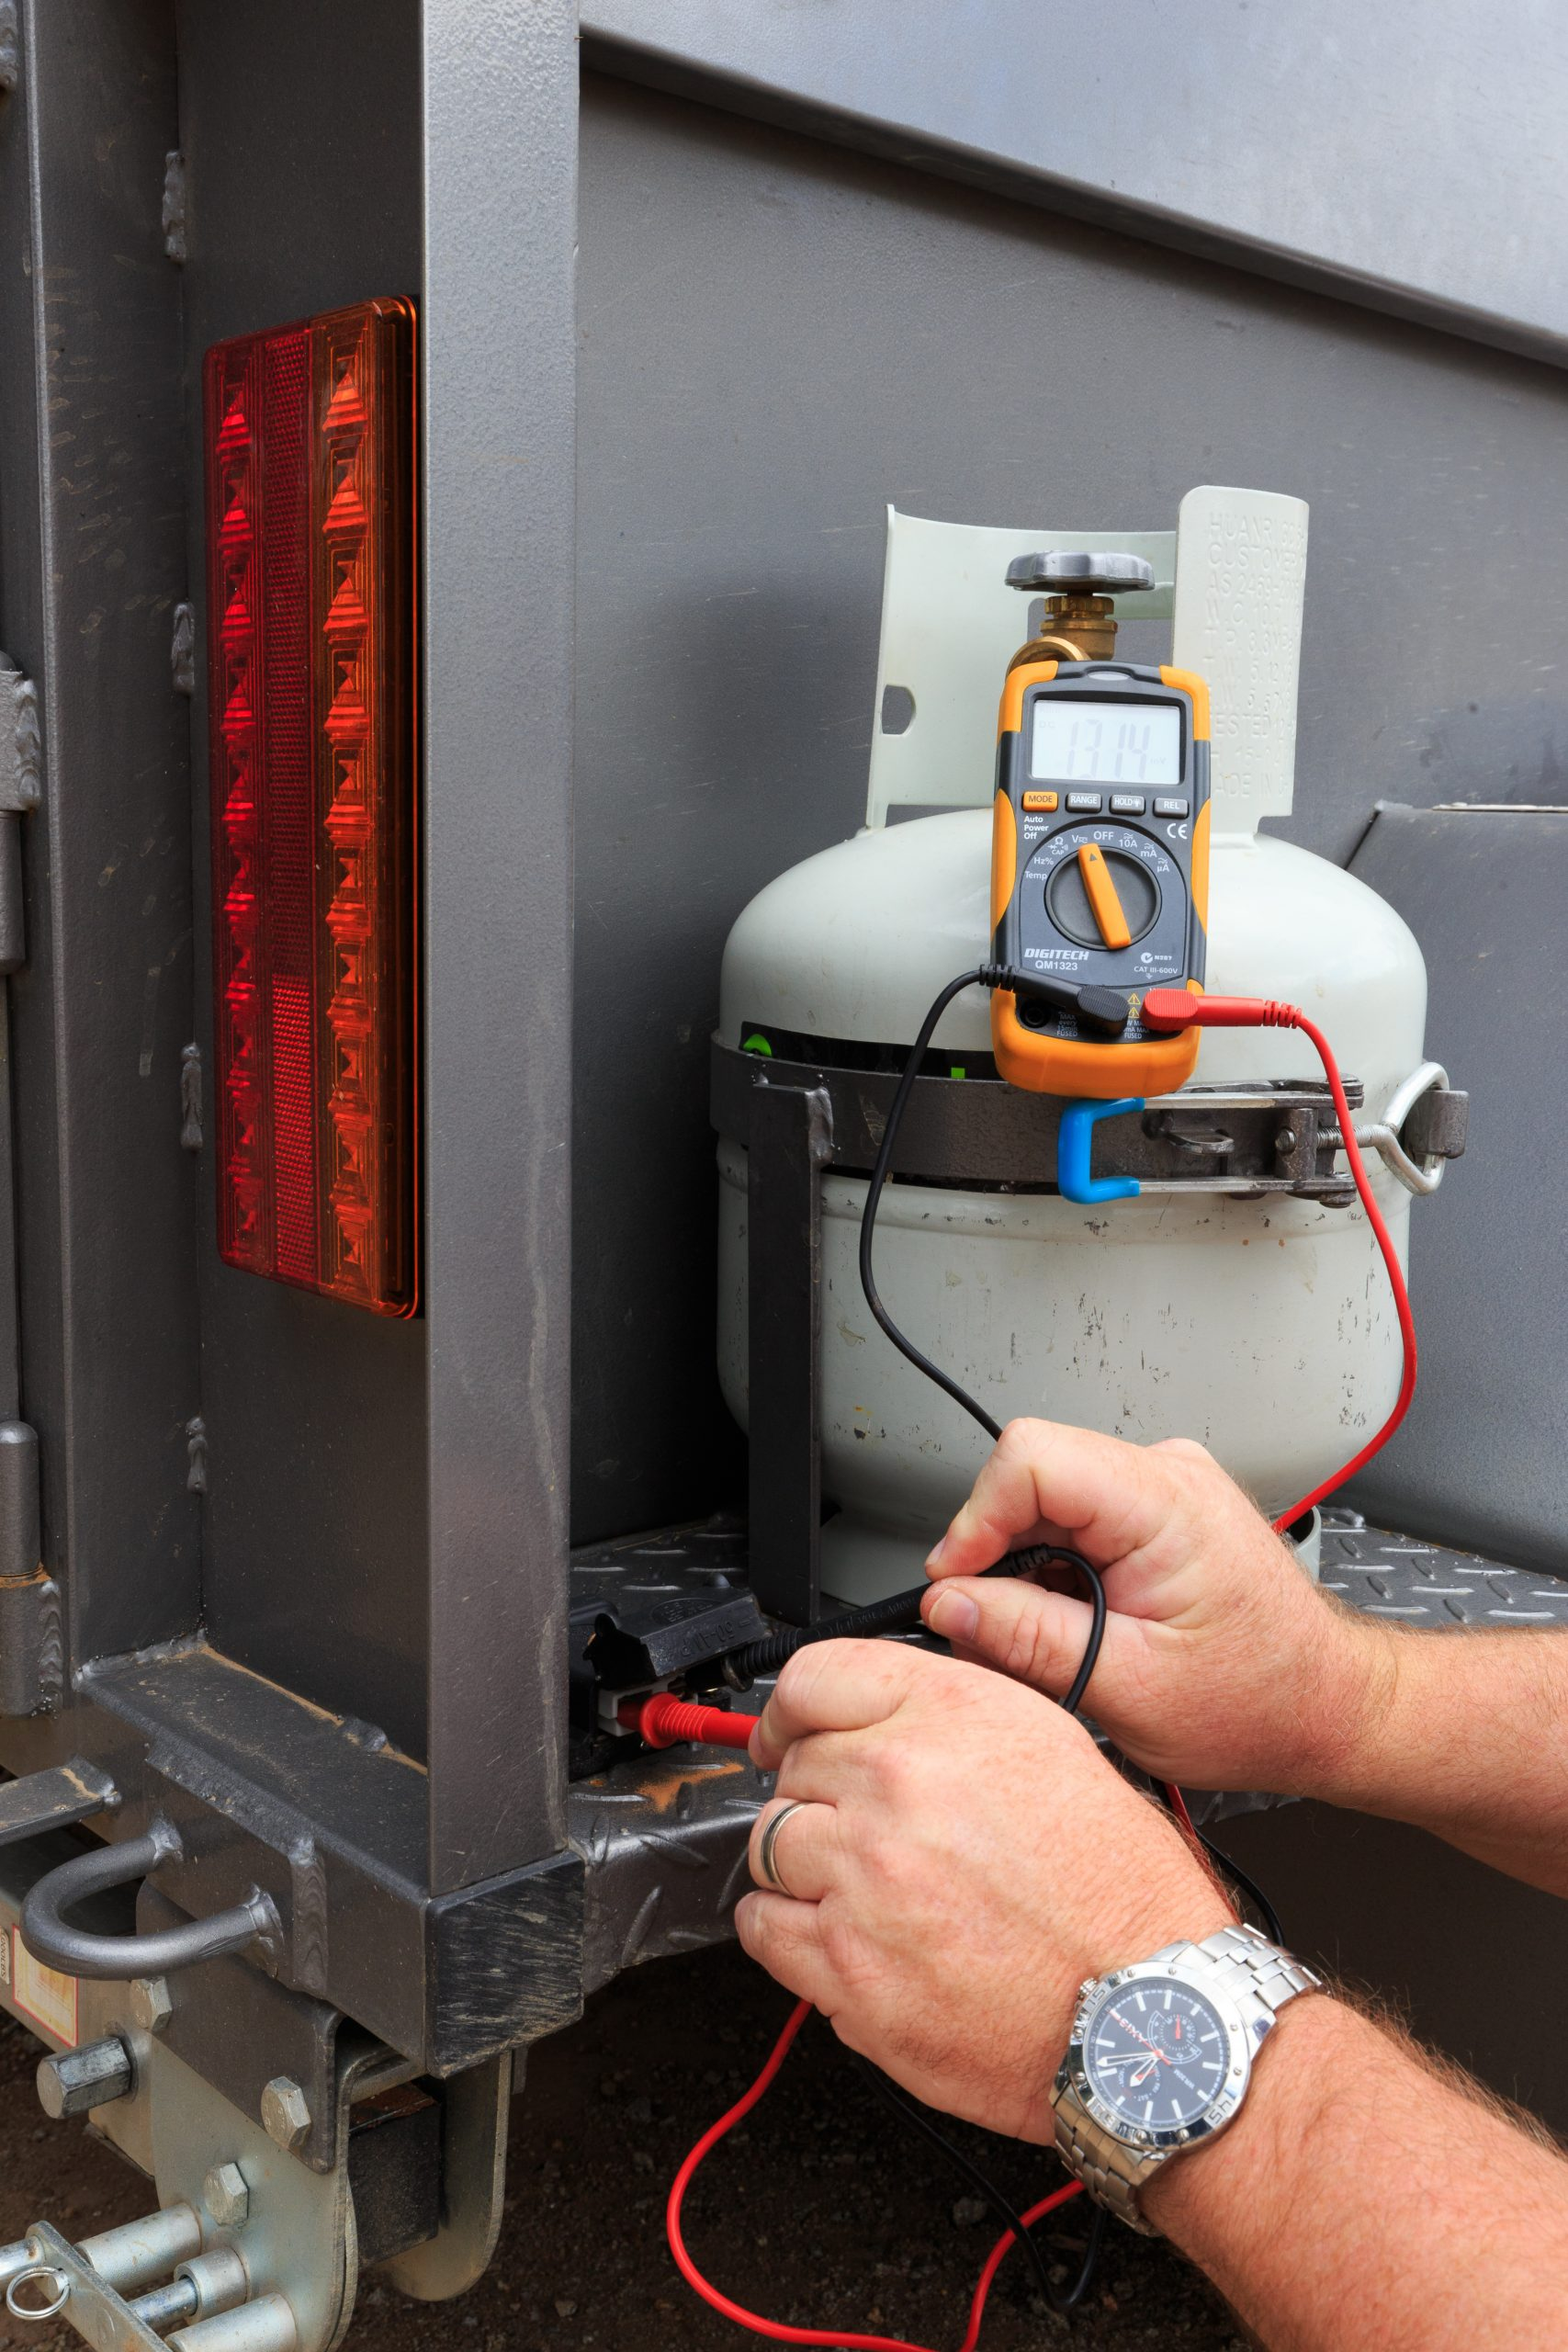 An electrical circuit tester is an RV essential tool